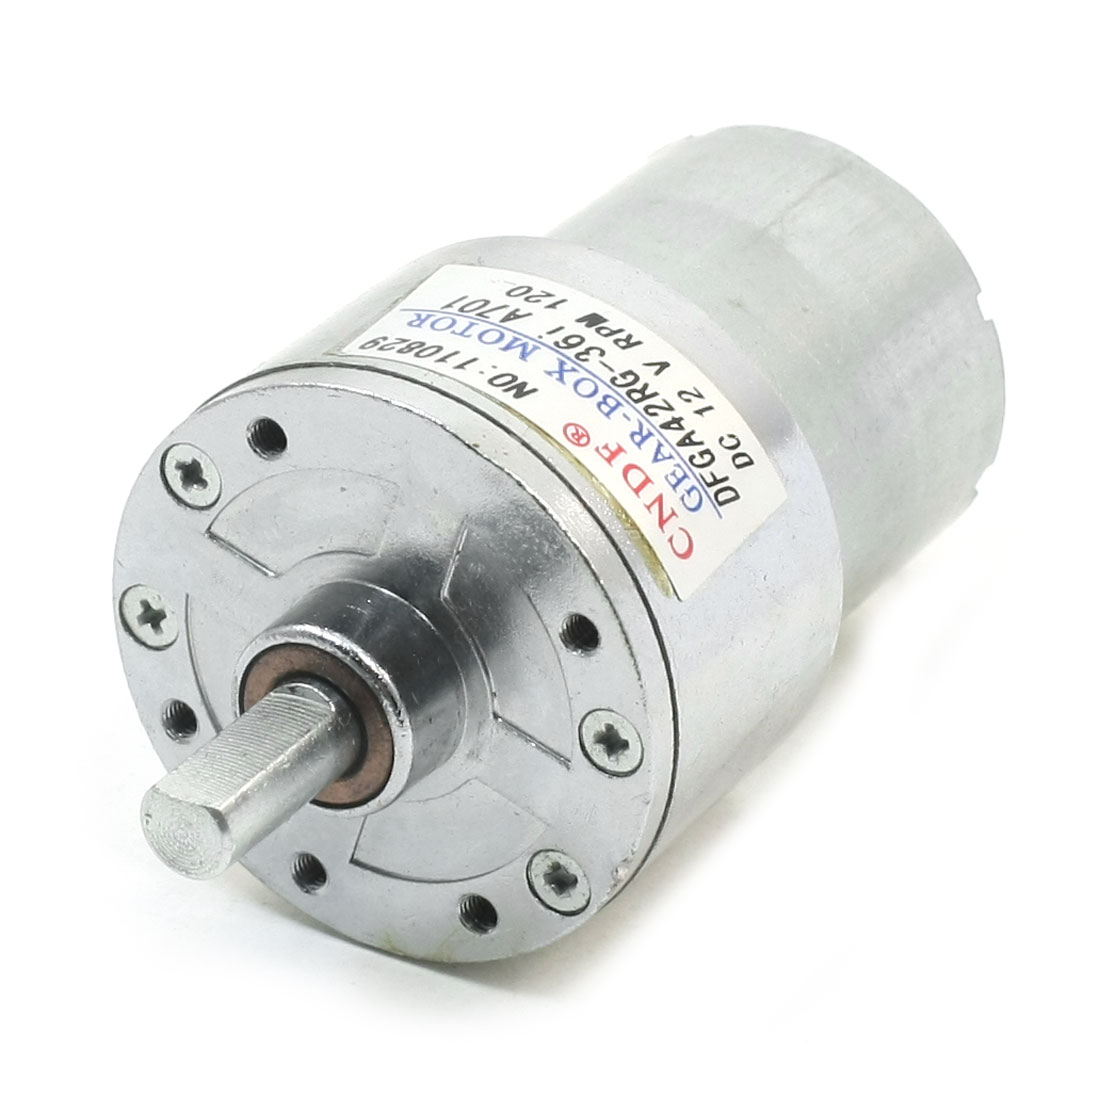 DC-12V-120RPM-2Pins-Connector-81mm-Length-Gearbox-Motor